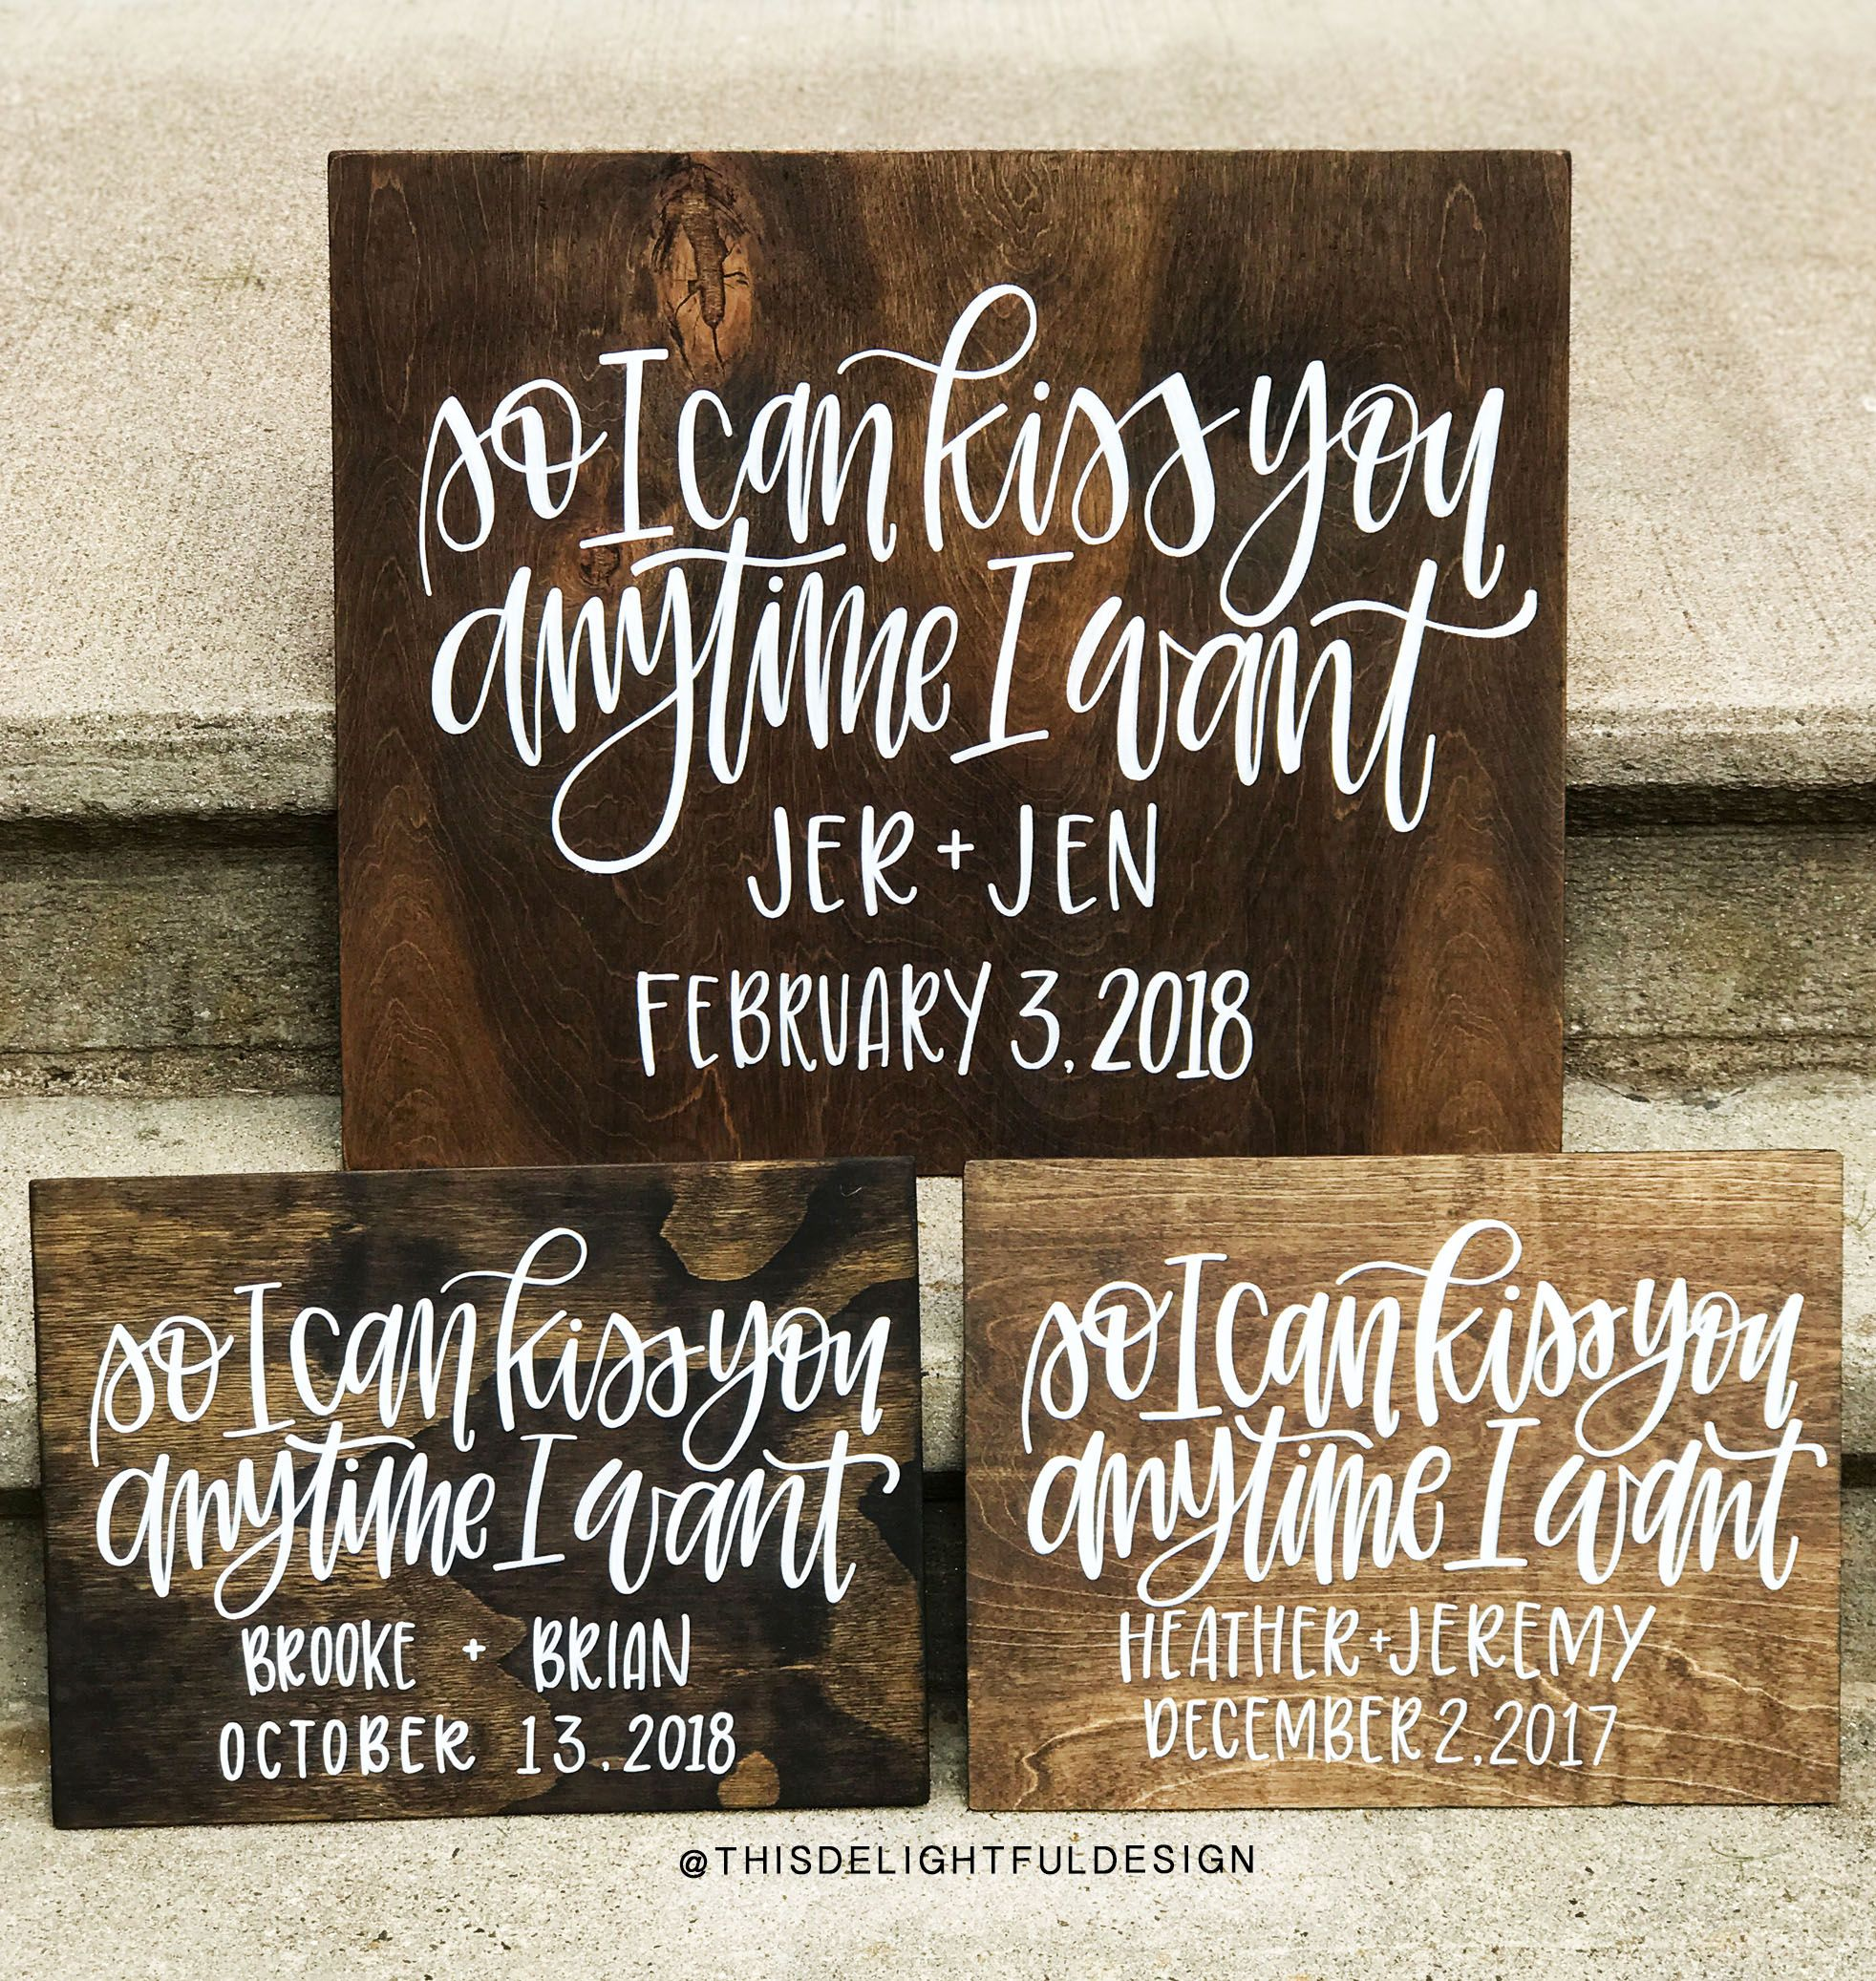 Wedding decorations for home december 2018 So I can Kiss You Anytime I want  Sweet Home Alabama  Quote